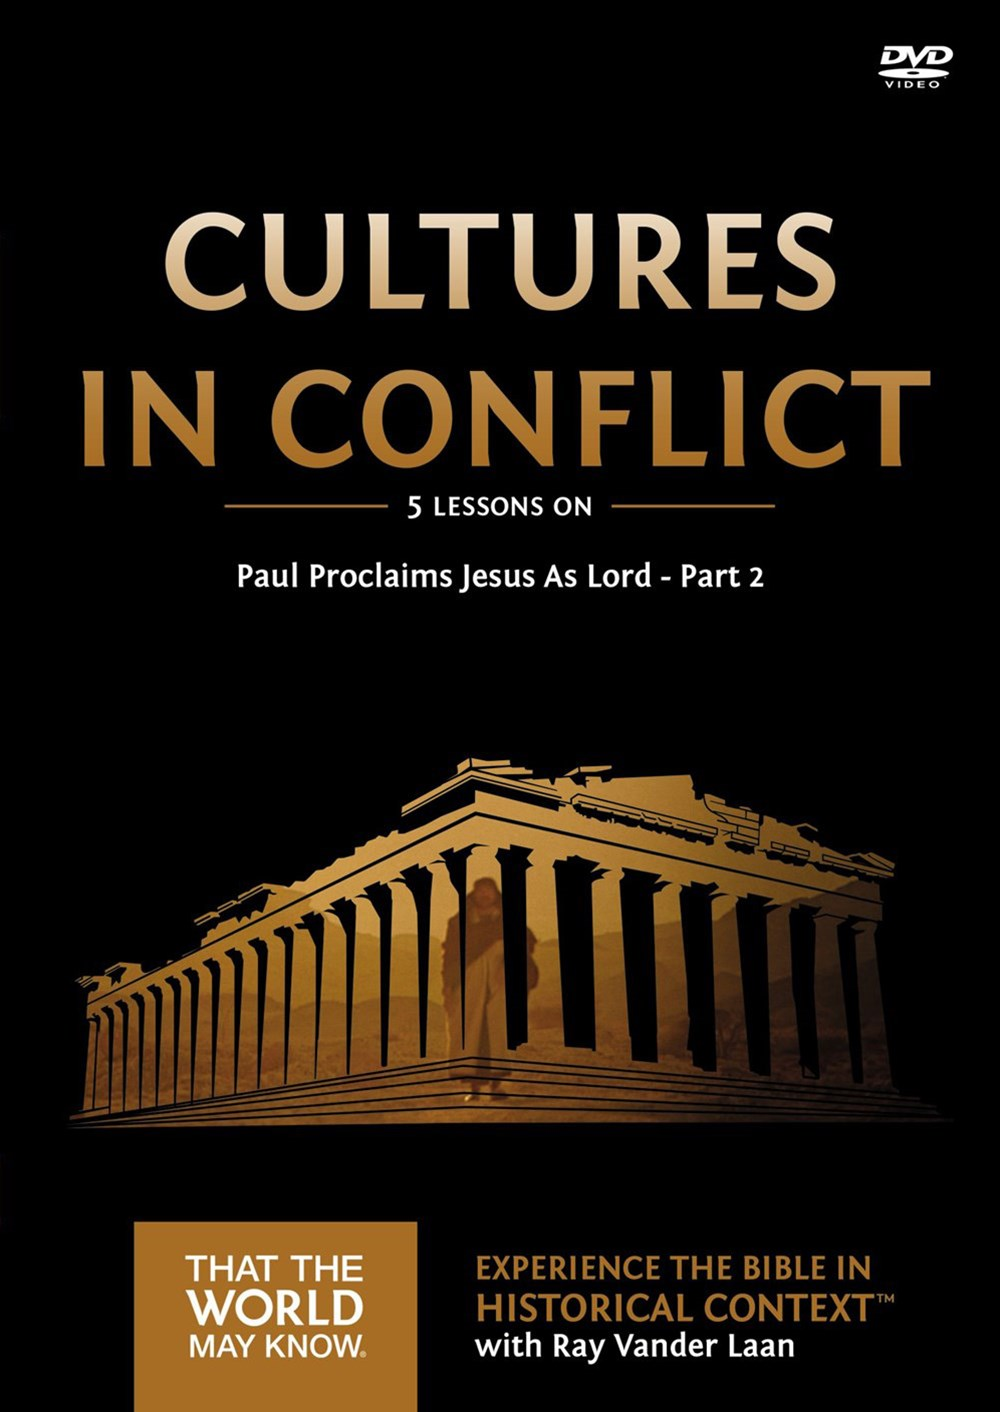 Cultures In Conflict Video Study: Paul Proclaims Jesus As Lord - Part 2